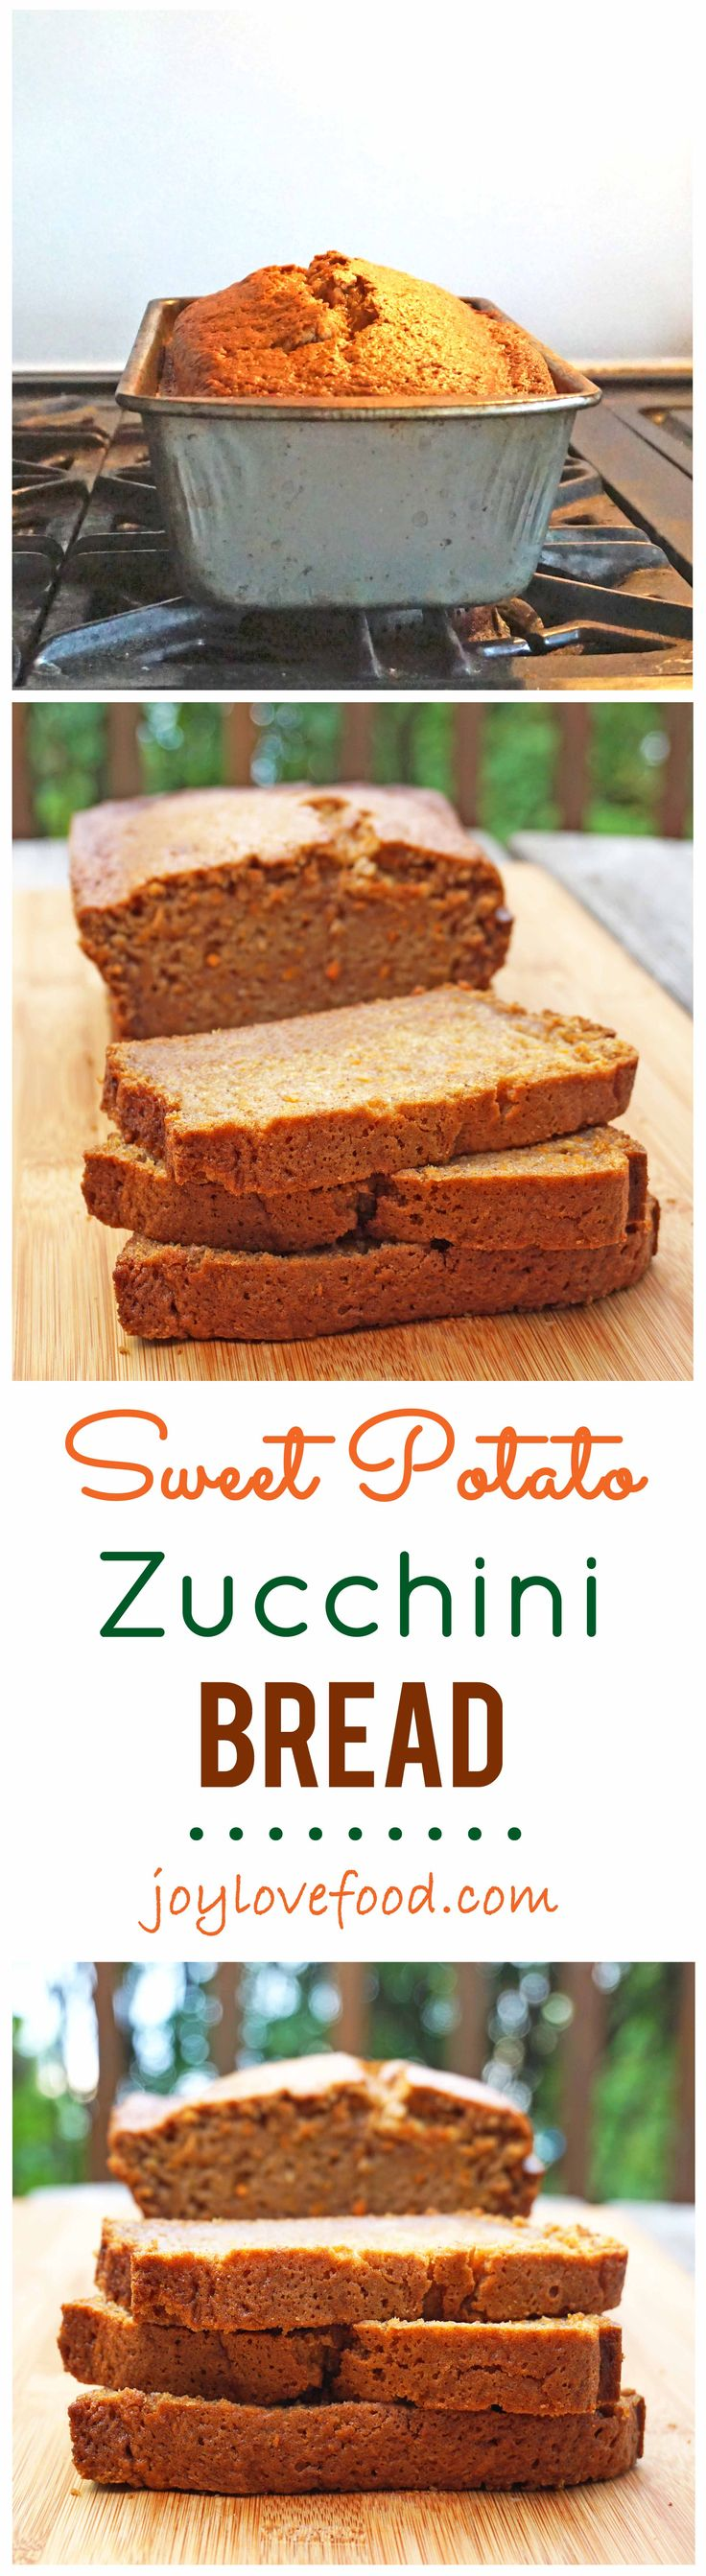 The flavors of late summer and early fall come together beautifully in this deliciously fragrant Sweet Potato Zucchini Bread.